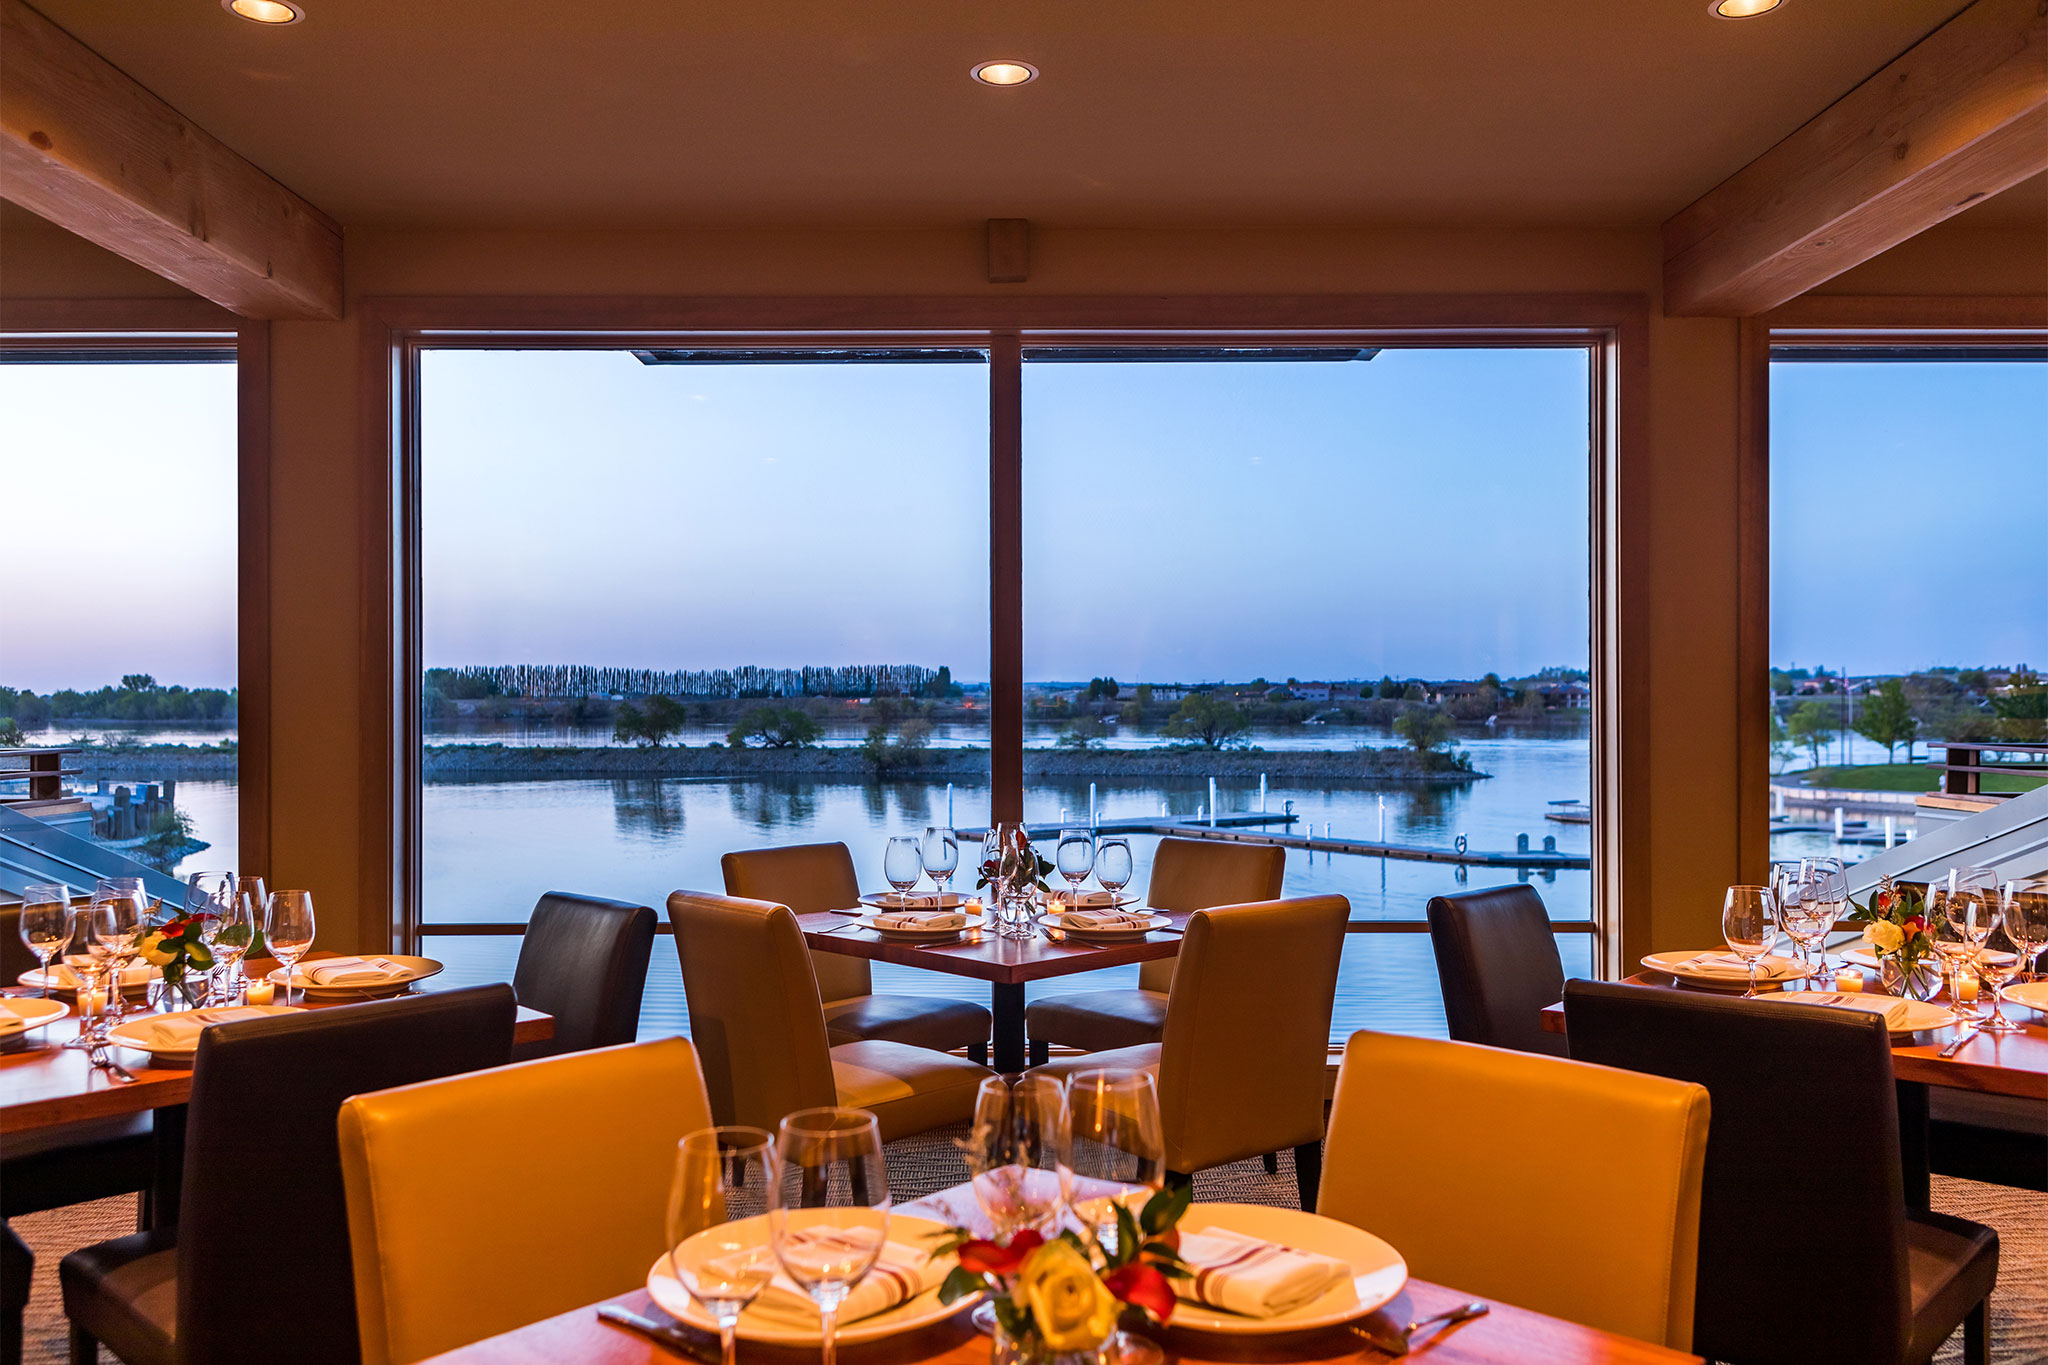 Riverfront-Dining-at-Drumheller's-Restaurant-in-Richland